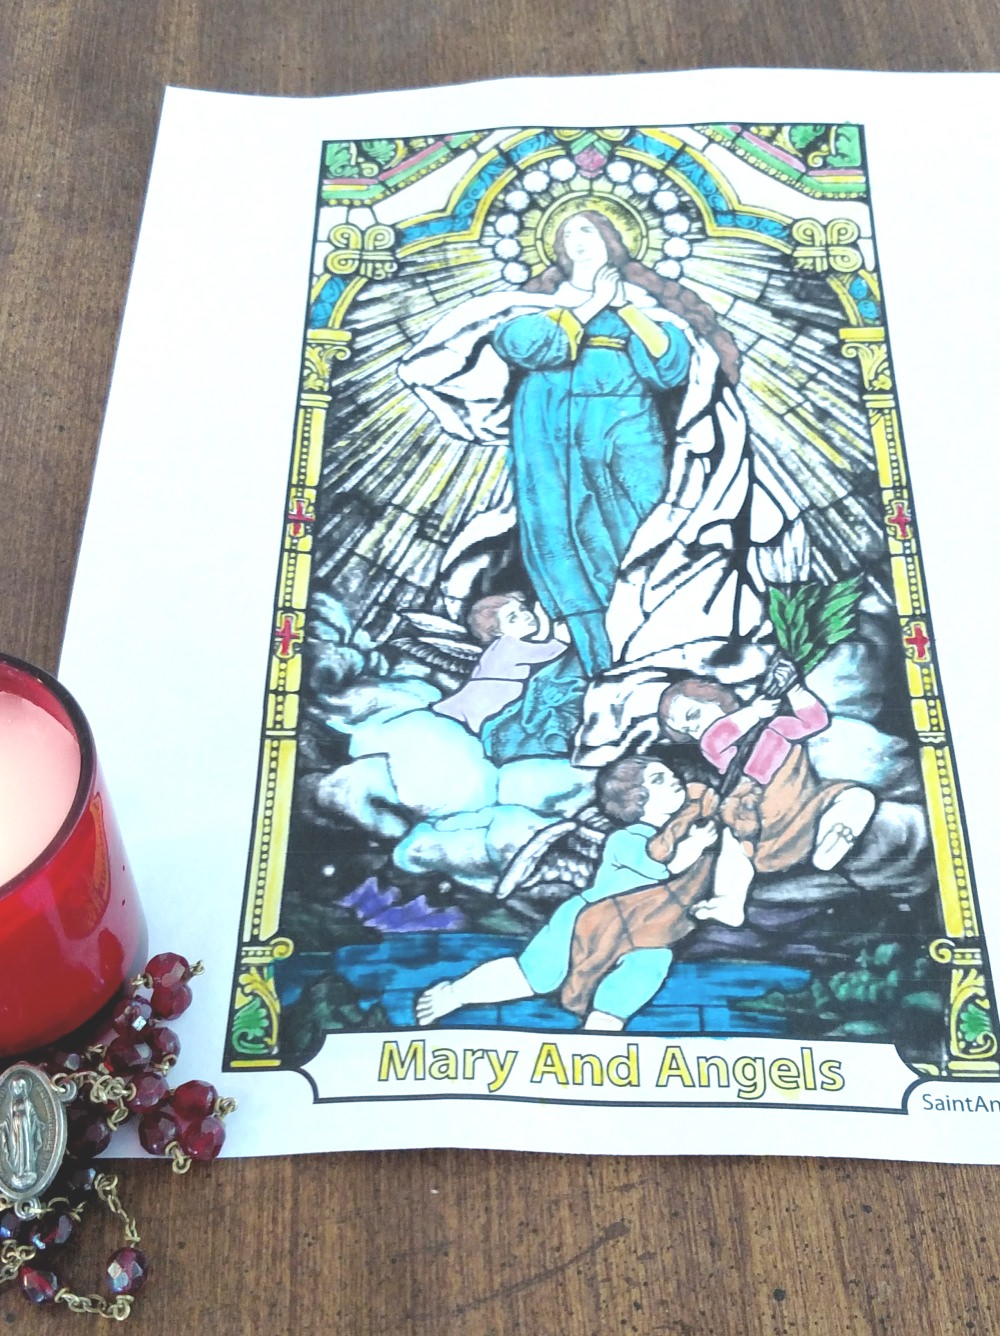 Assumption Day Coloring Page: Feast of the Assumption, August 15